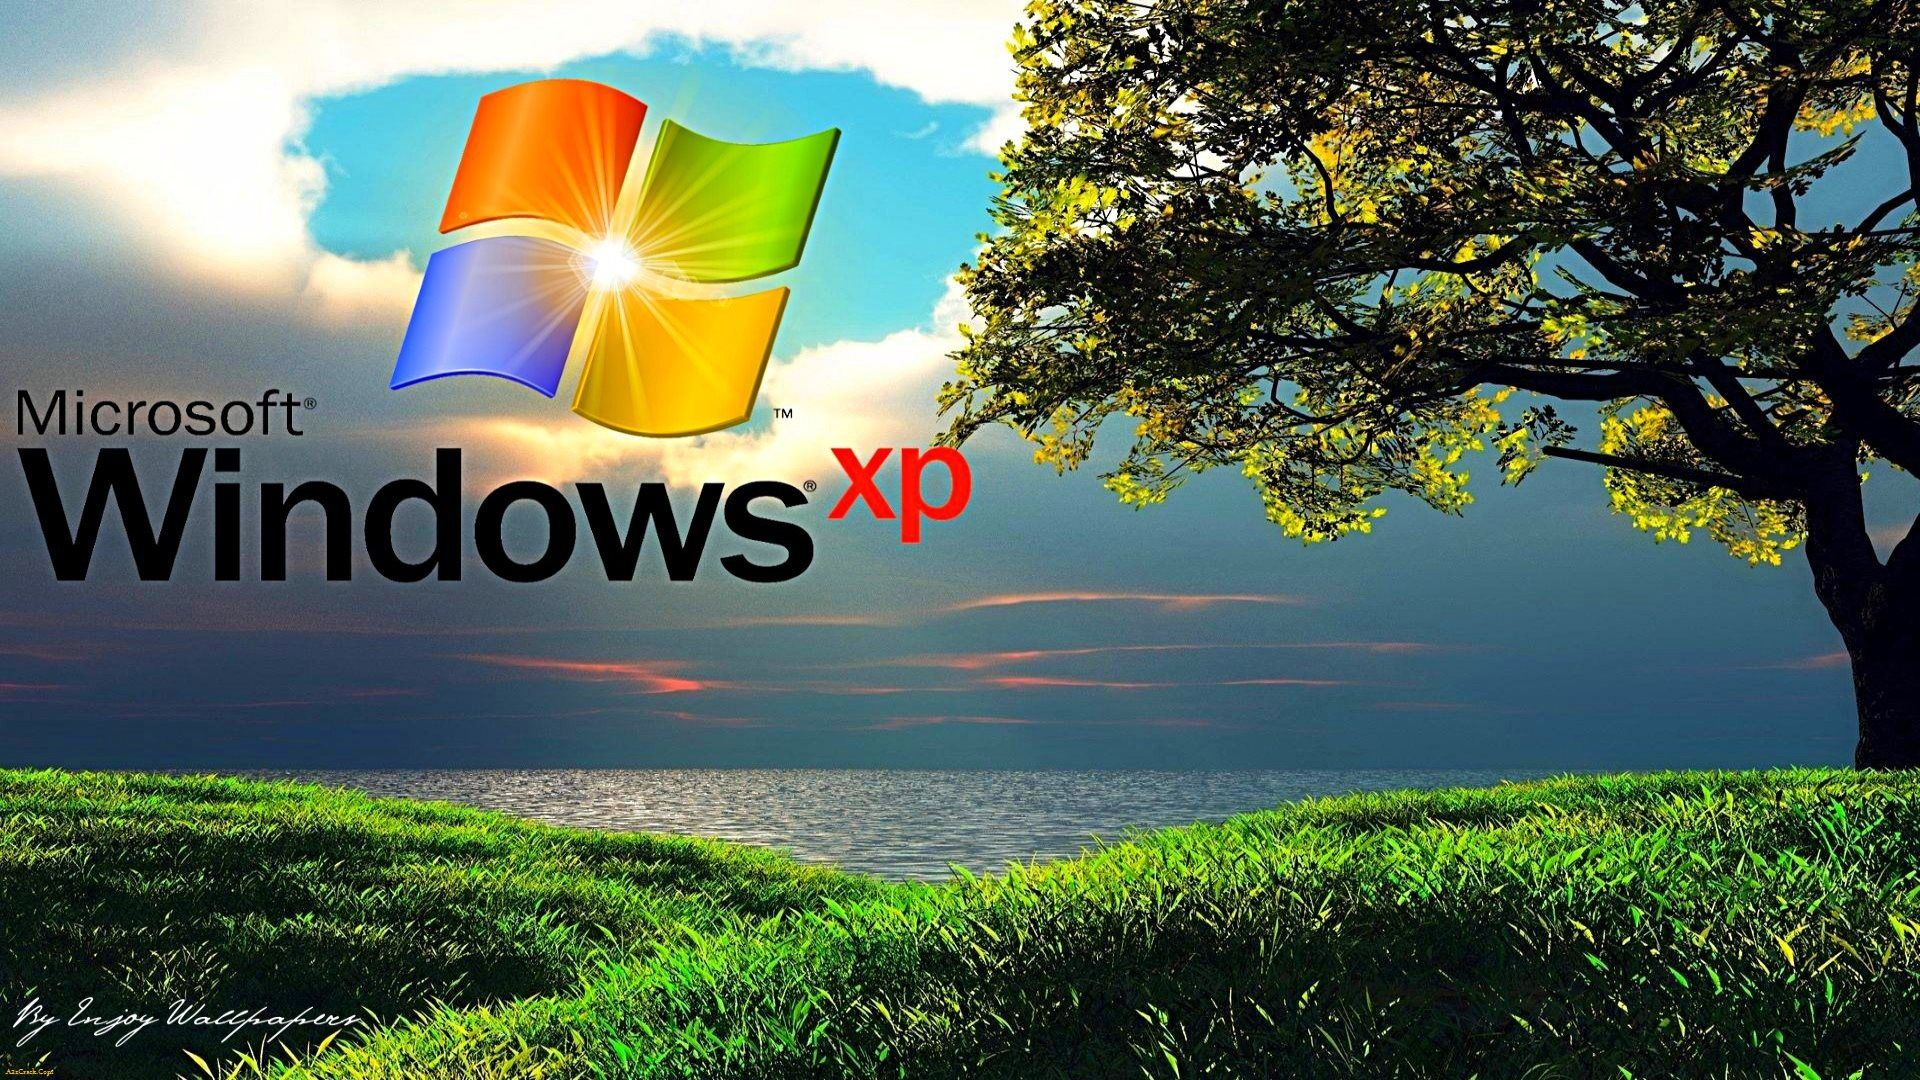 windows xp hd wallpaper best collection azcrack 1920a—1080 xp hd wallpapers 68 wallpapers